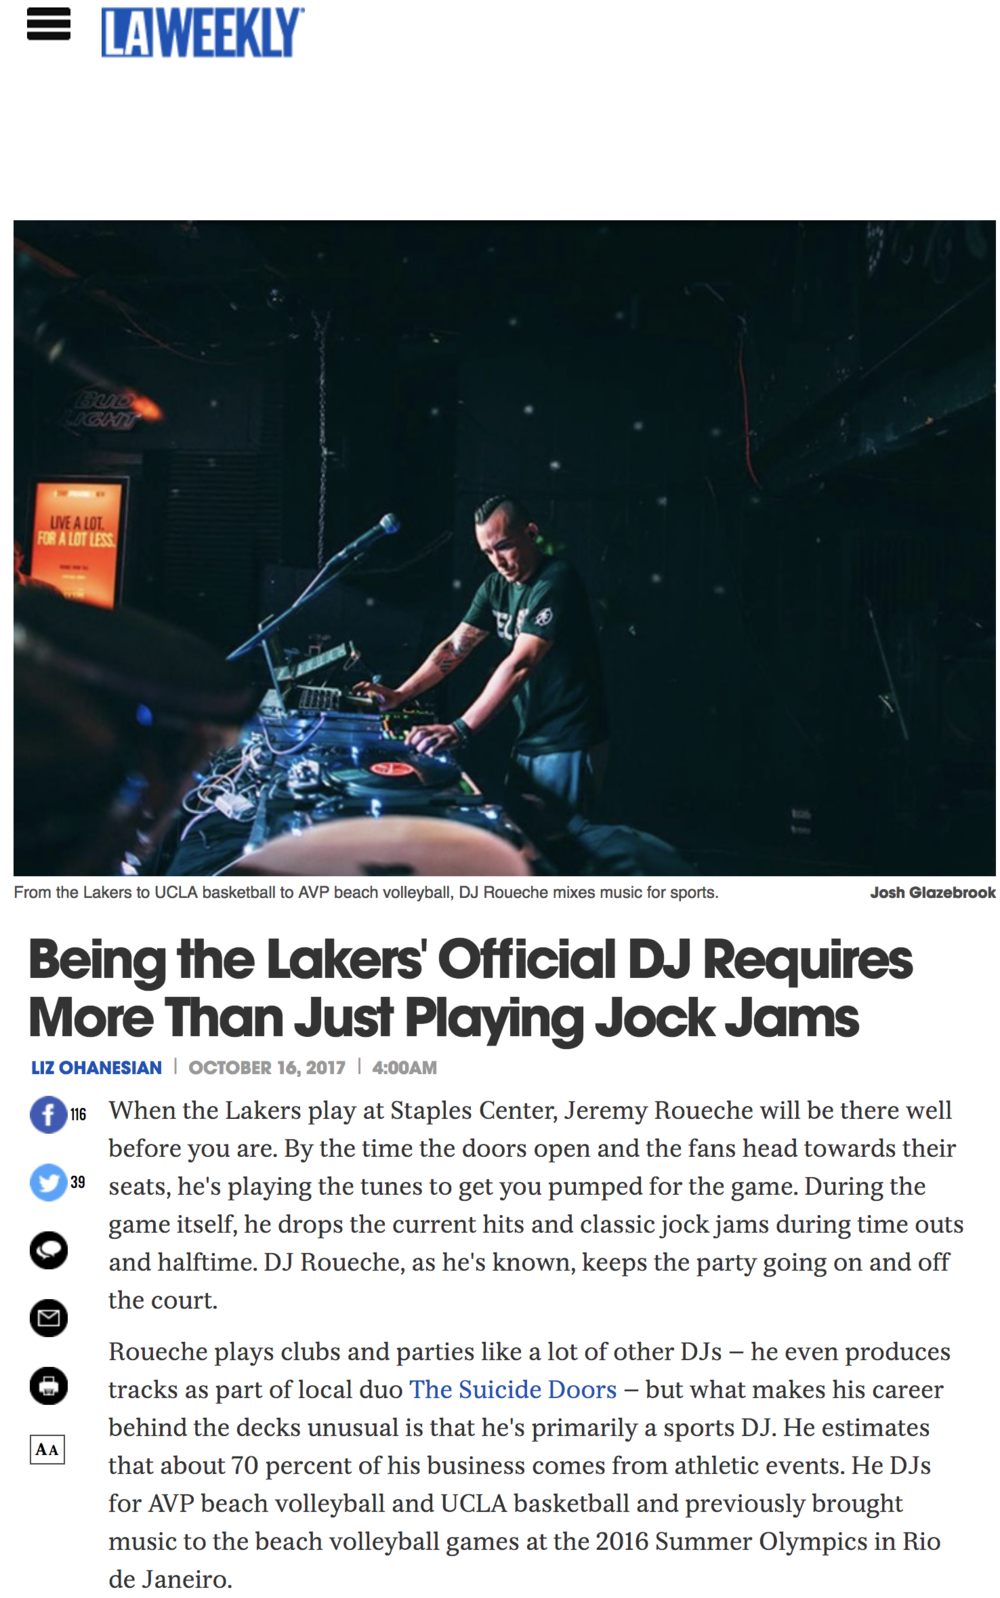 Being the Lakers' Official DJ Requires More Than Just Playing Jock Jams - LA Weekly | October 16, 2017